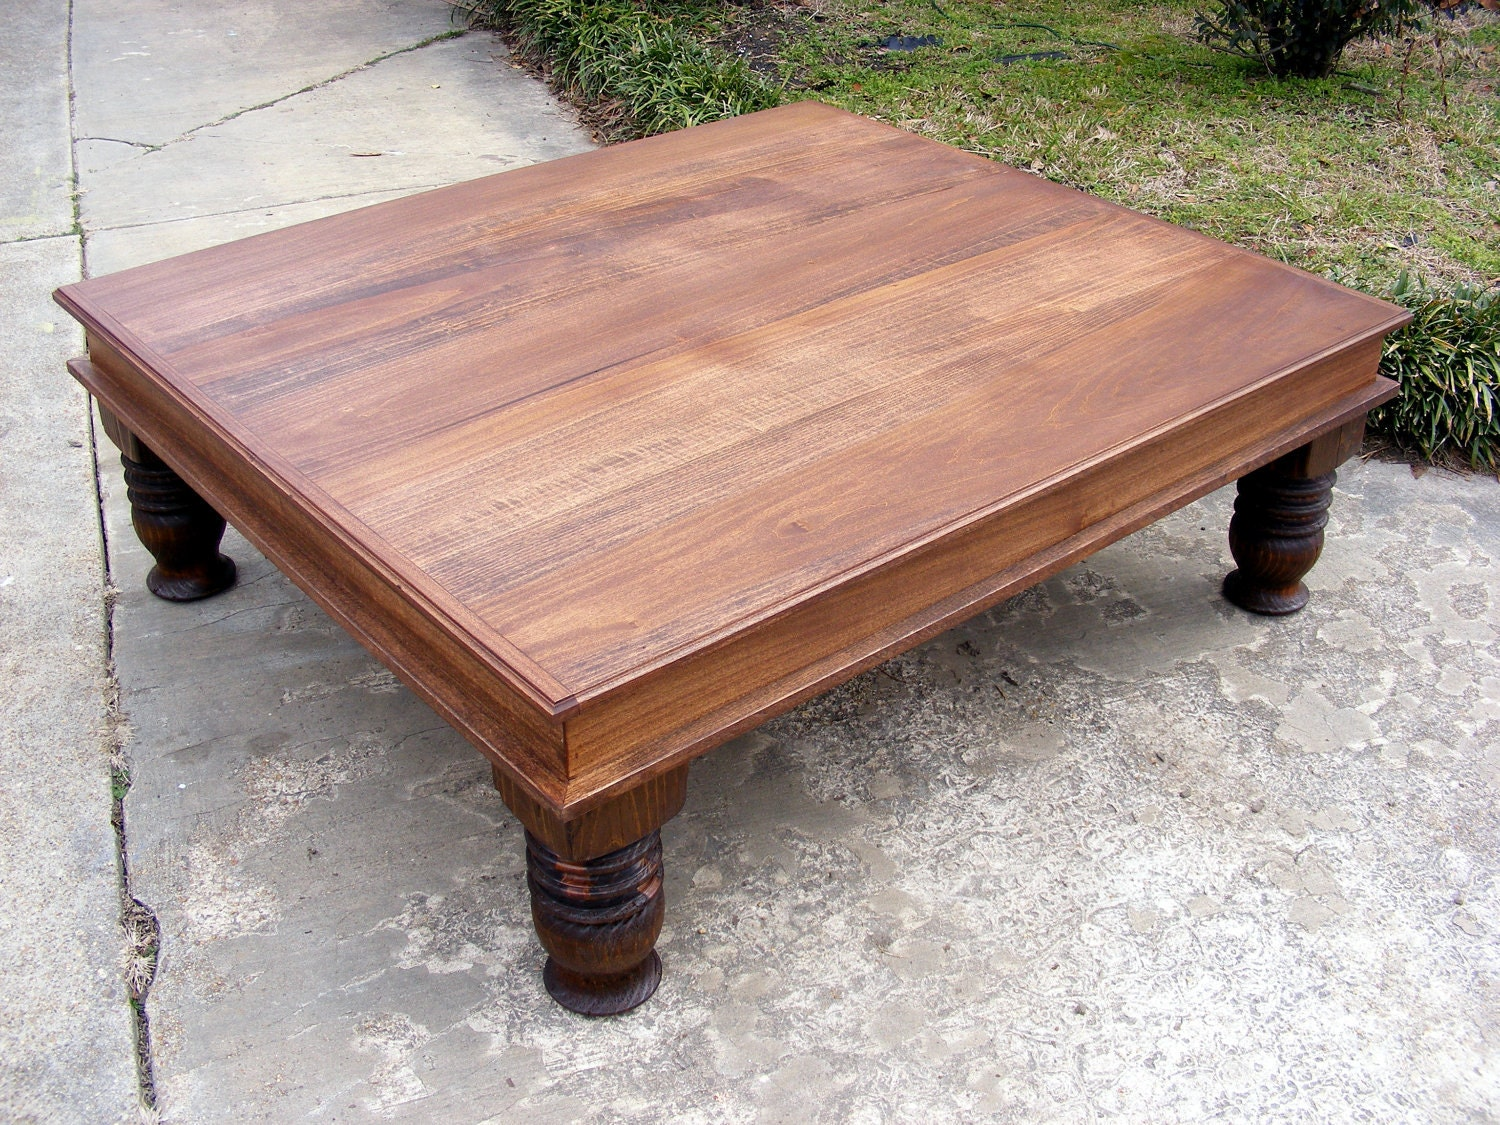 Handcrafted Coffee Table English Chestnut Finish By Thewoodworkman